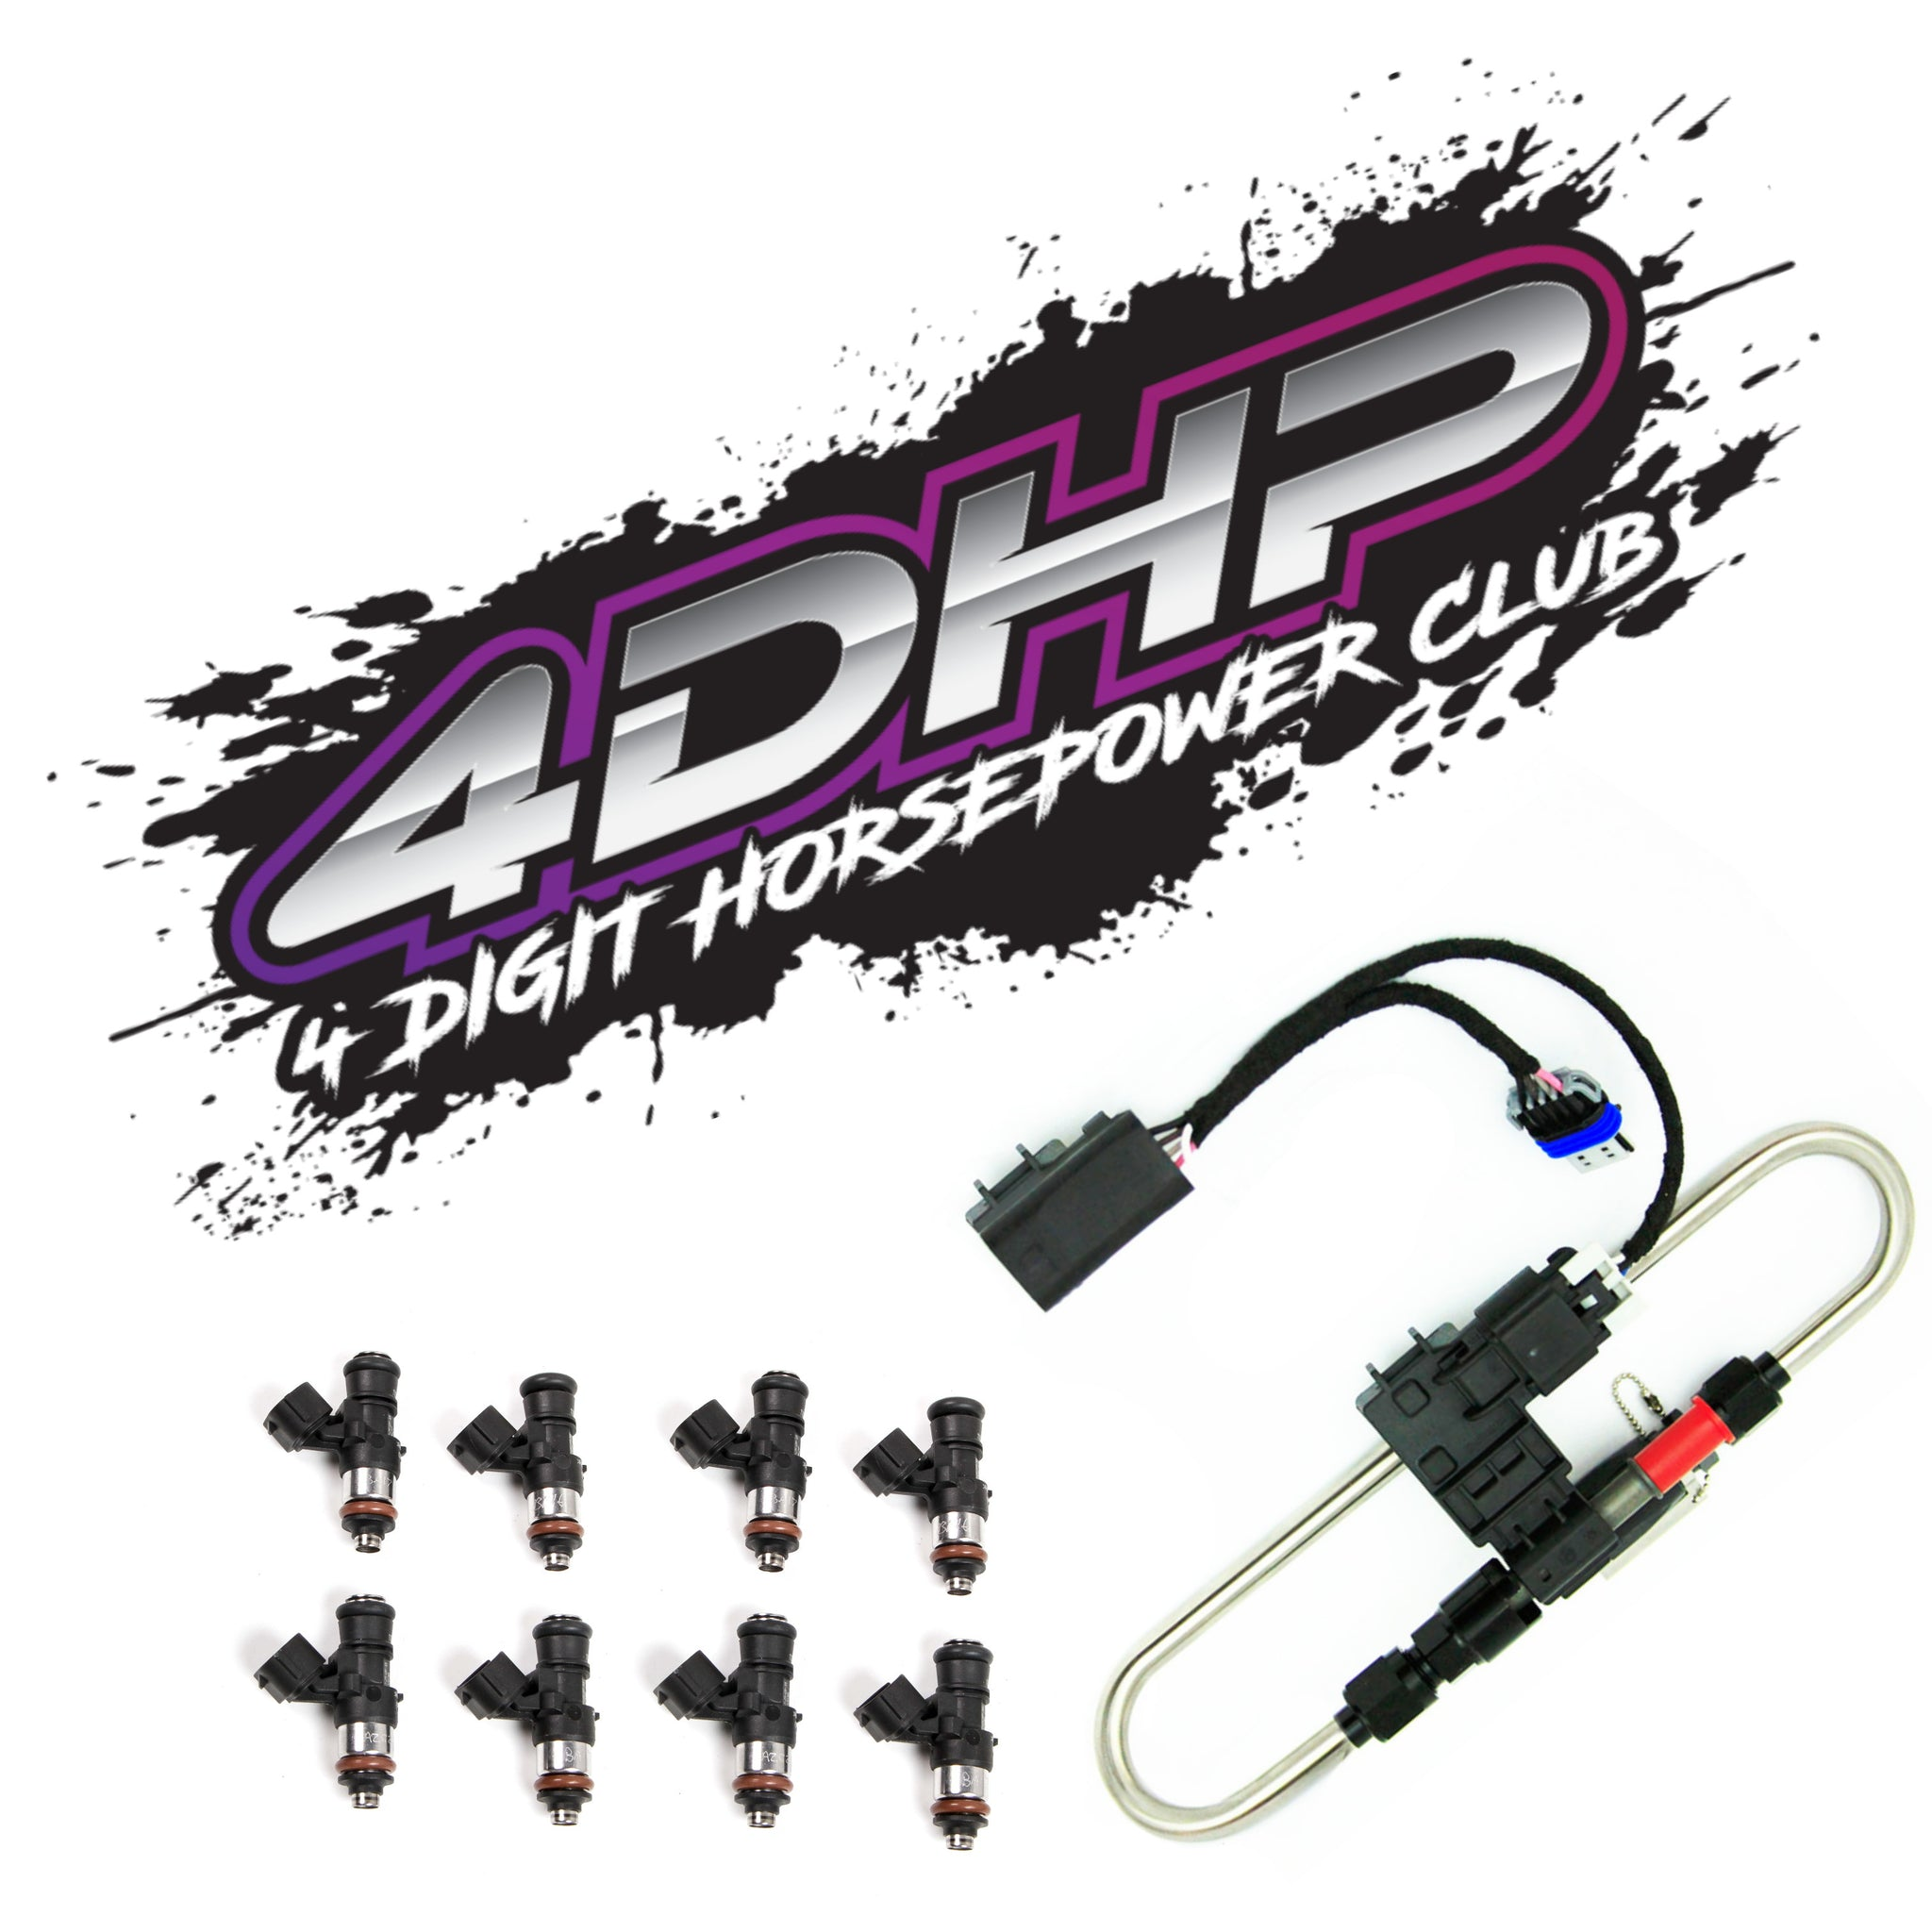 4DHPClub Complete Flex Fuel E85 package